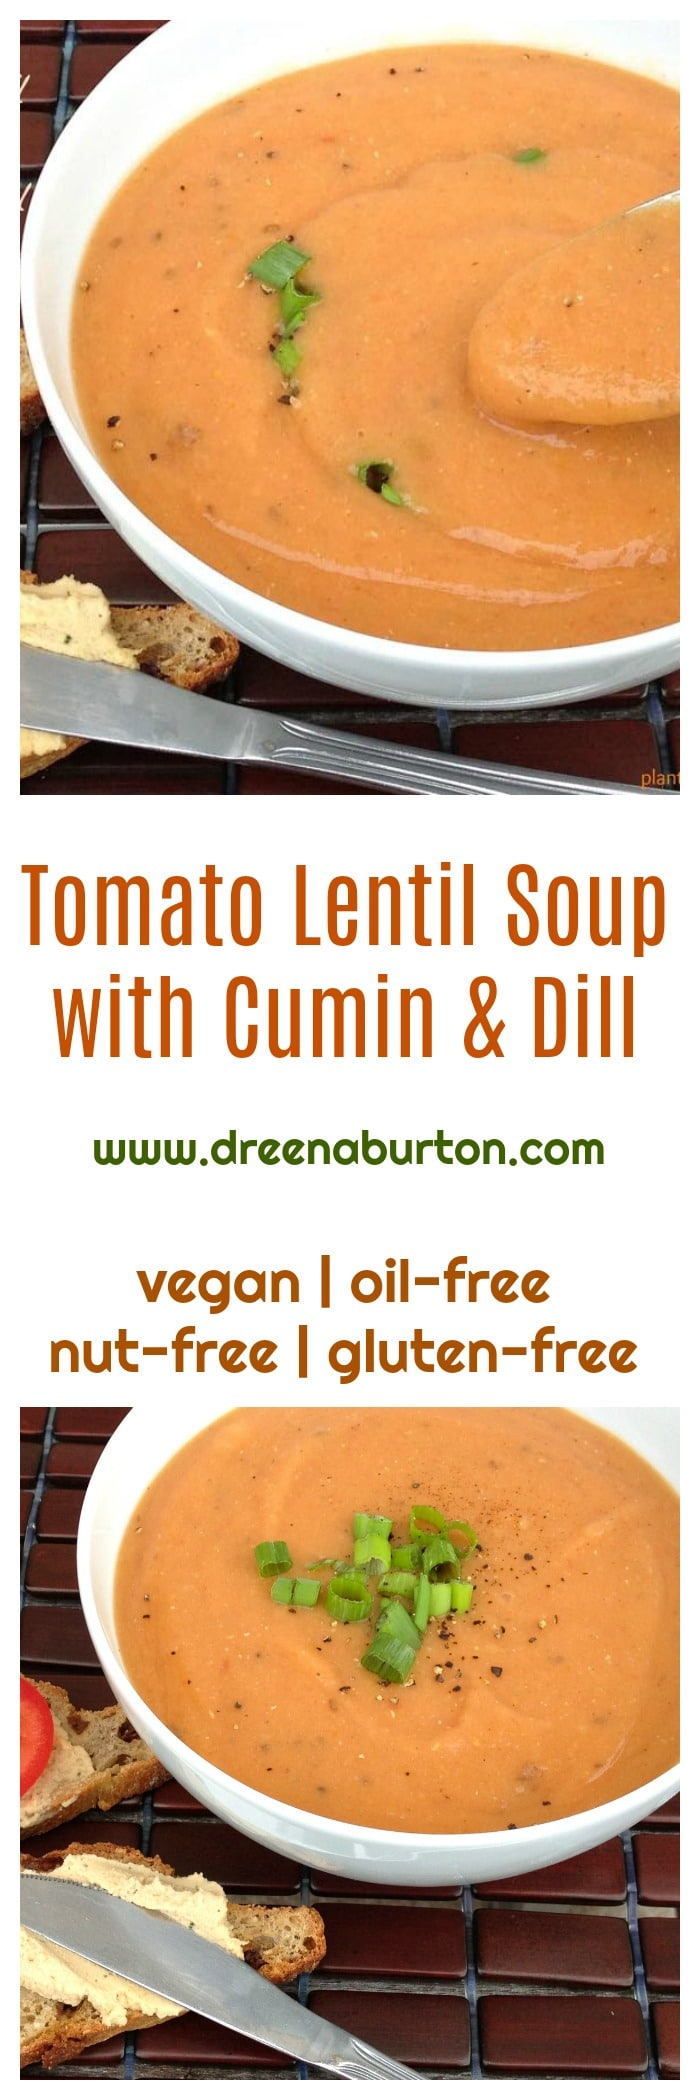 The ingredients are simple. The flavors are divine! TOMATO DILL LENTIL SOUP with cumin and dill www.dreenaburton.com